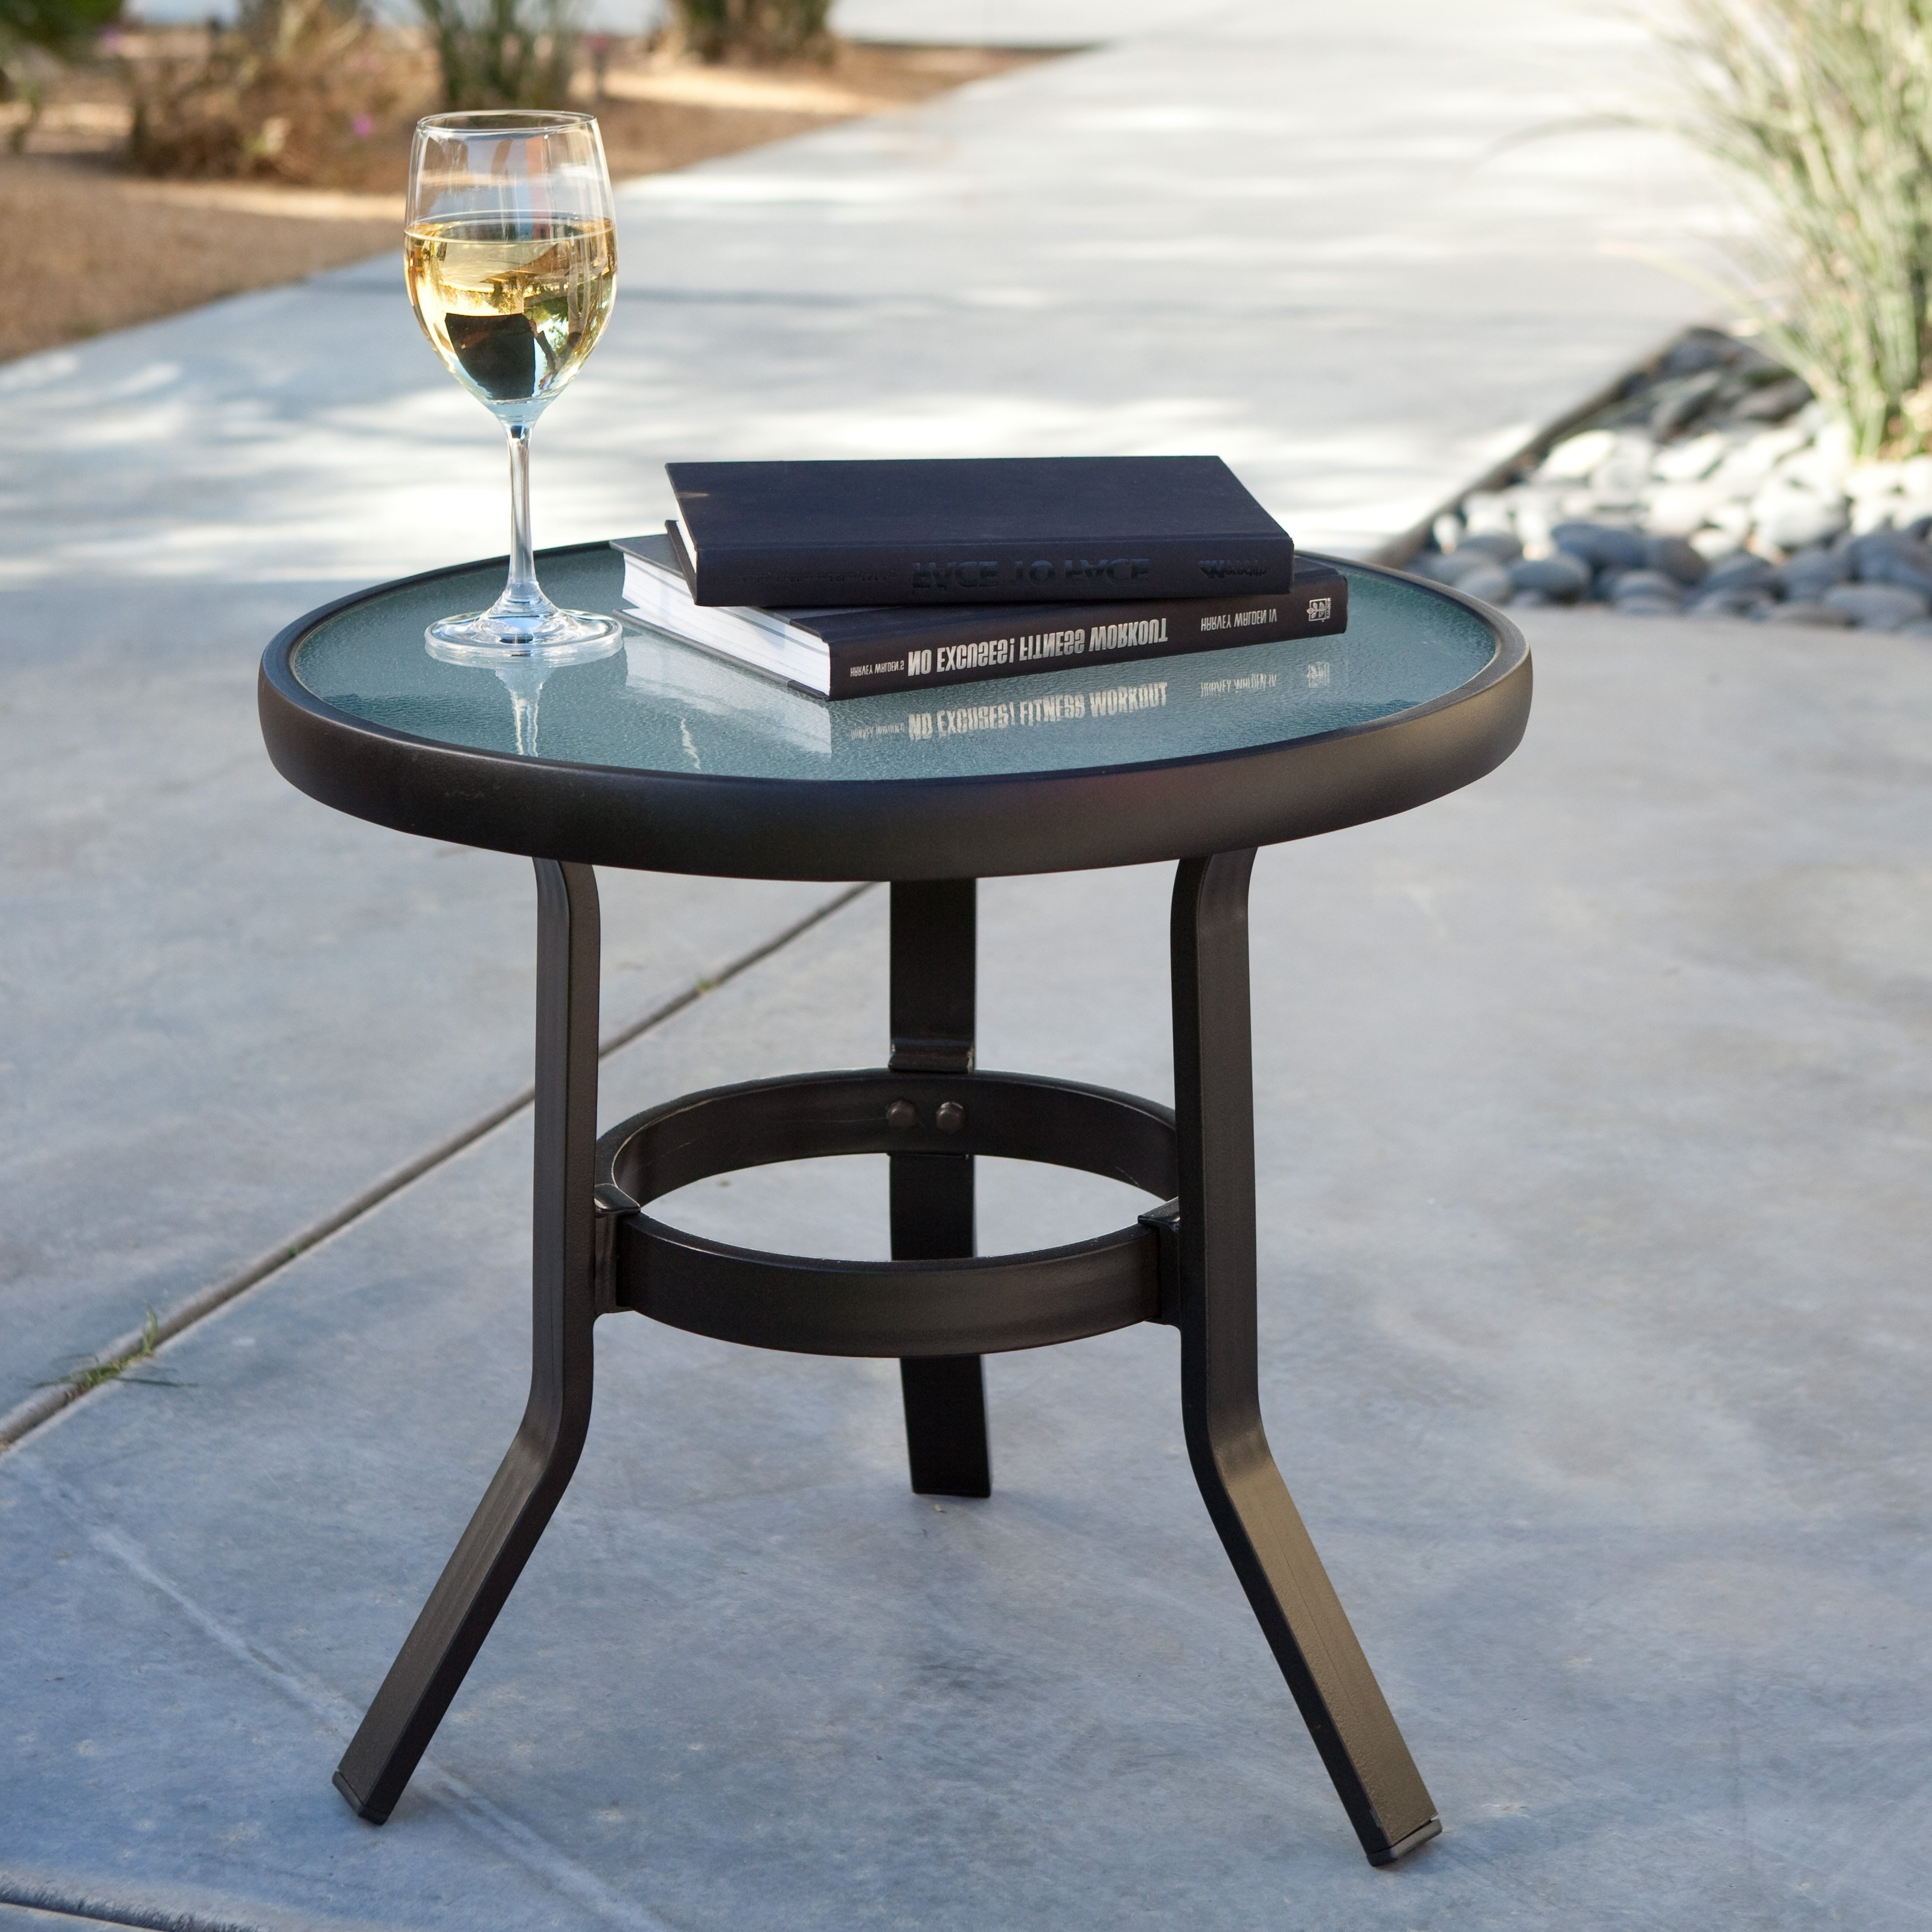 Small Patio Table With Umbrella For Well Known Small Patio Tables With Umbrellas Hole (View 15 of 20)